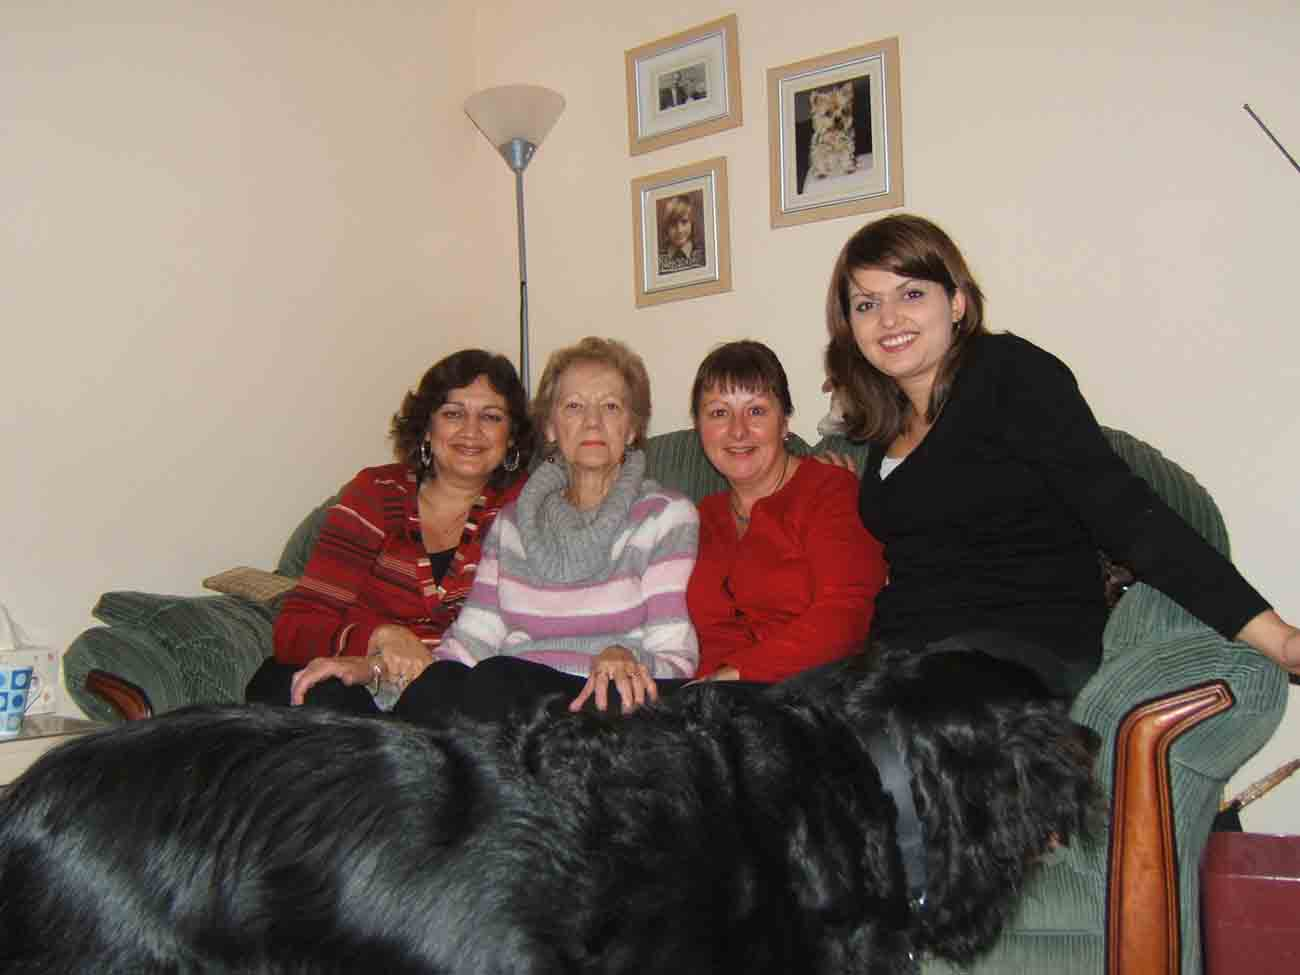 Visit to see my mum on 18/1/07, L -> R Ruth, Mum, Lesley and Hannah